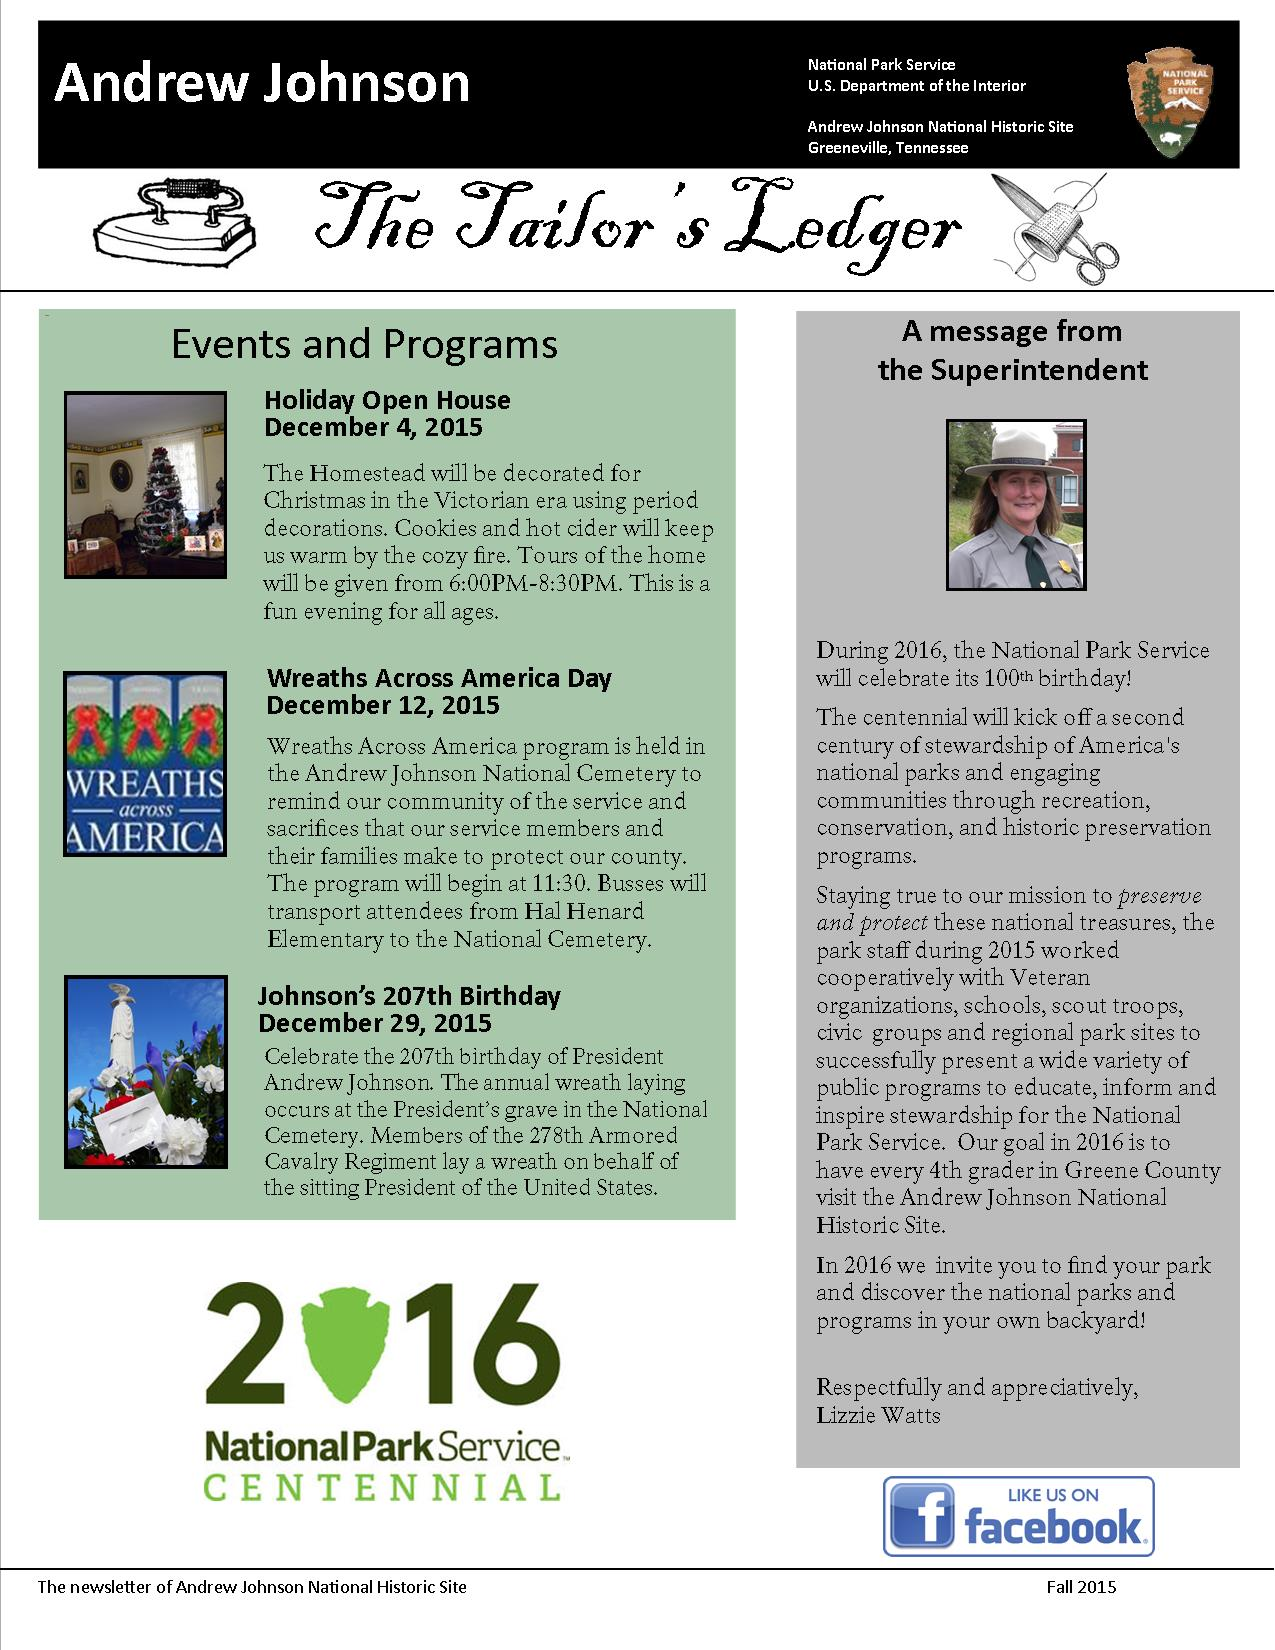 NEWSLETTER FALL 2015 (1)